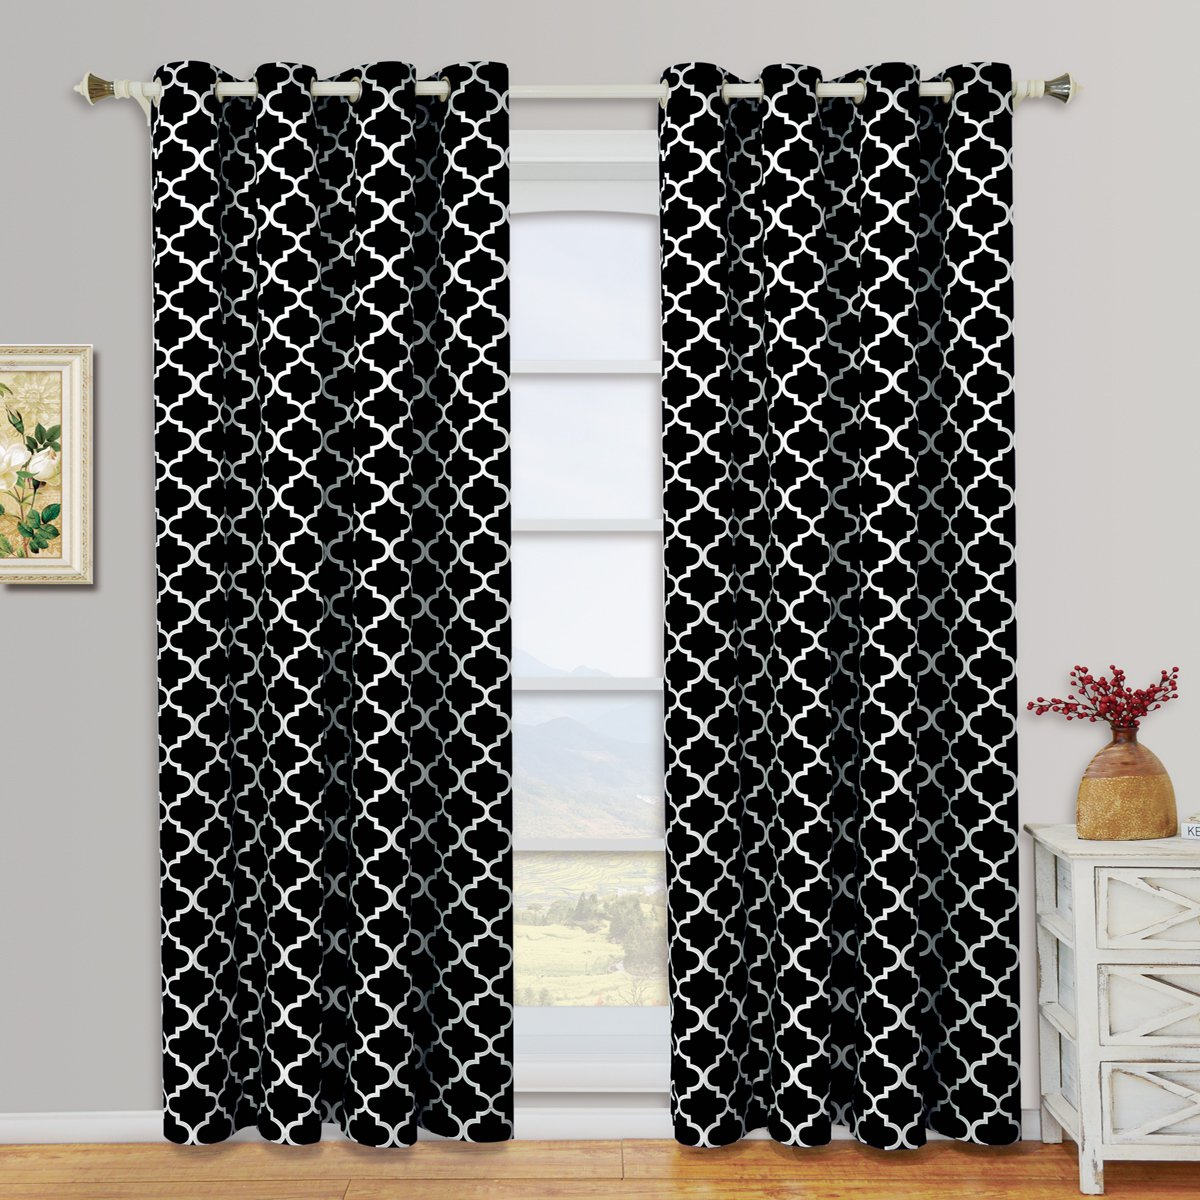 Meridian Black and White Grommet Room Darkening Window Curtain Panels